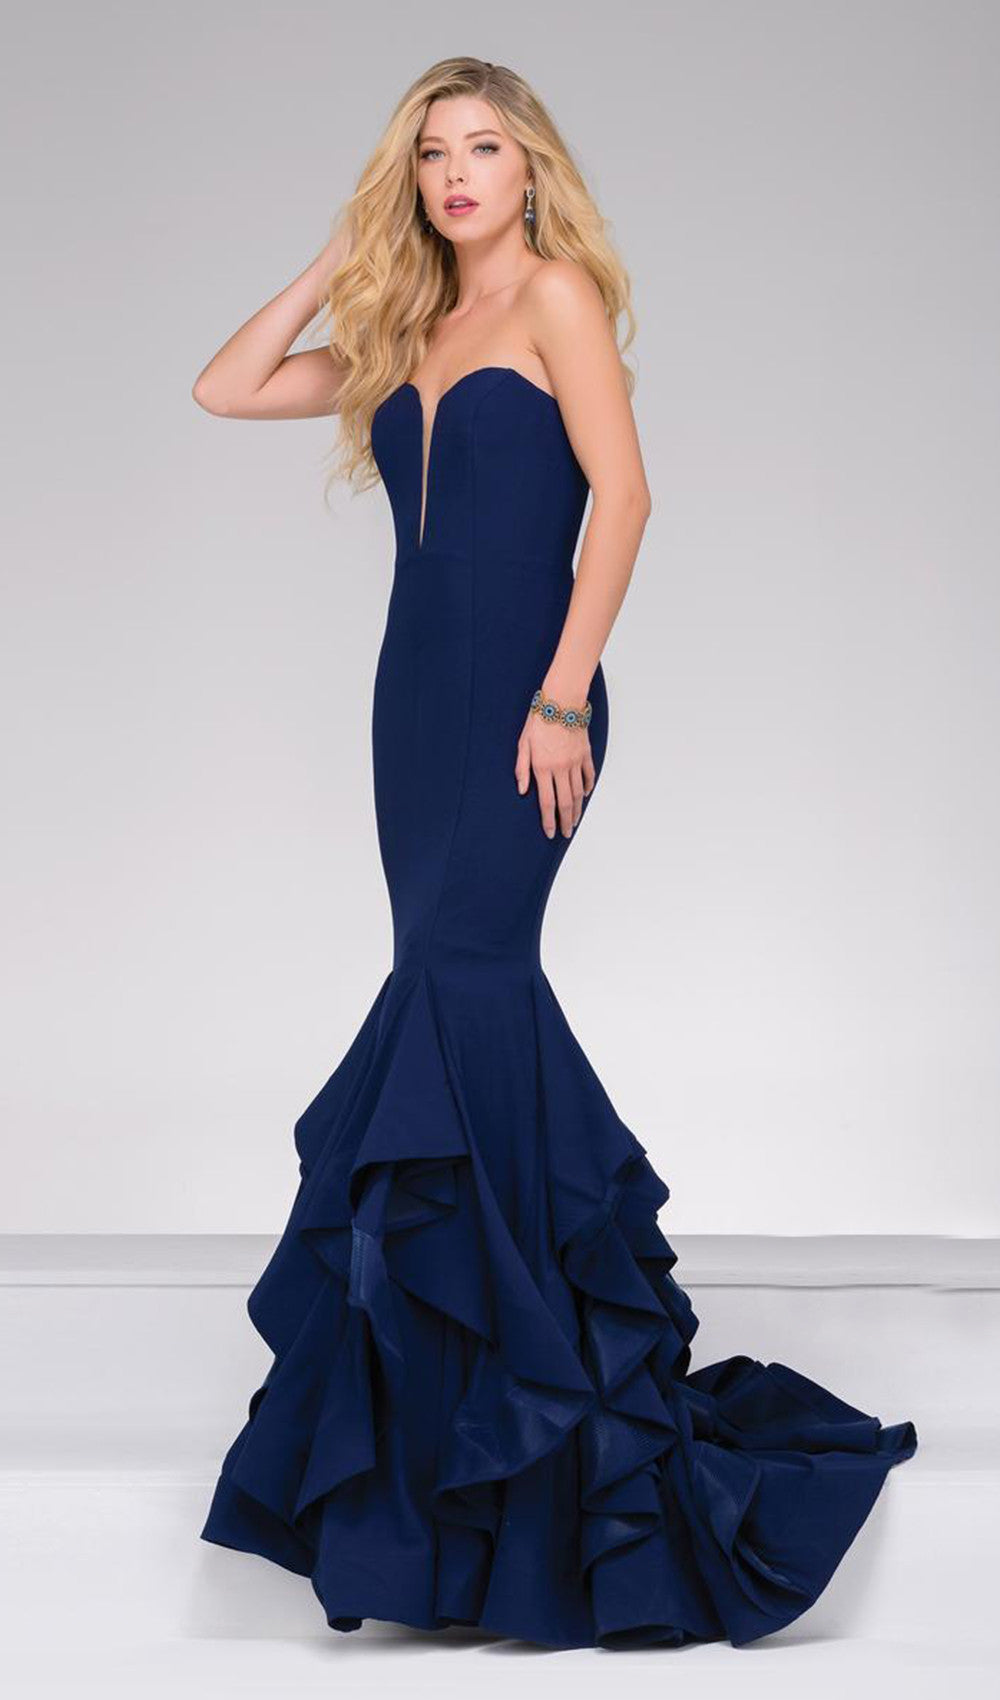 Exquisite Dramatic Crepe Dress | Jovani - STYLE 31625 JOVANI- Schaffer's Bridal in Des Moines & Phoenix